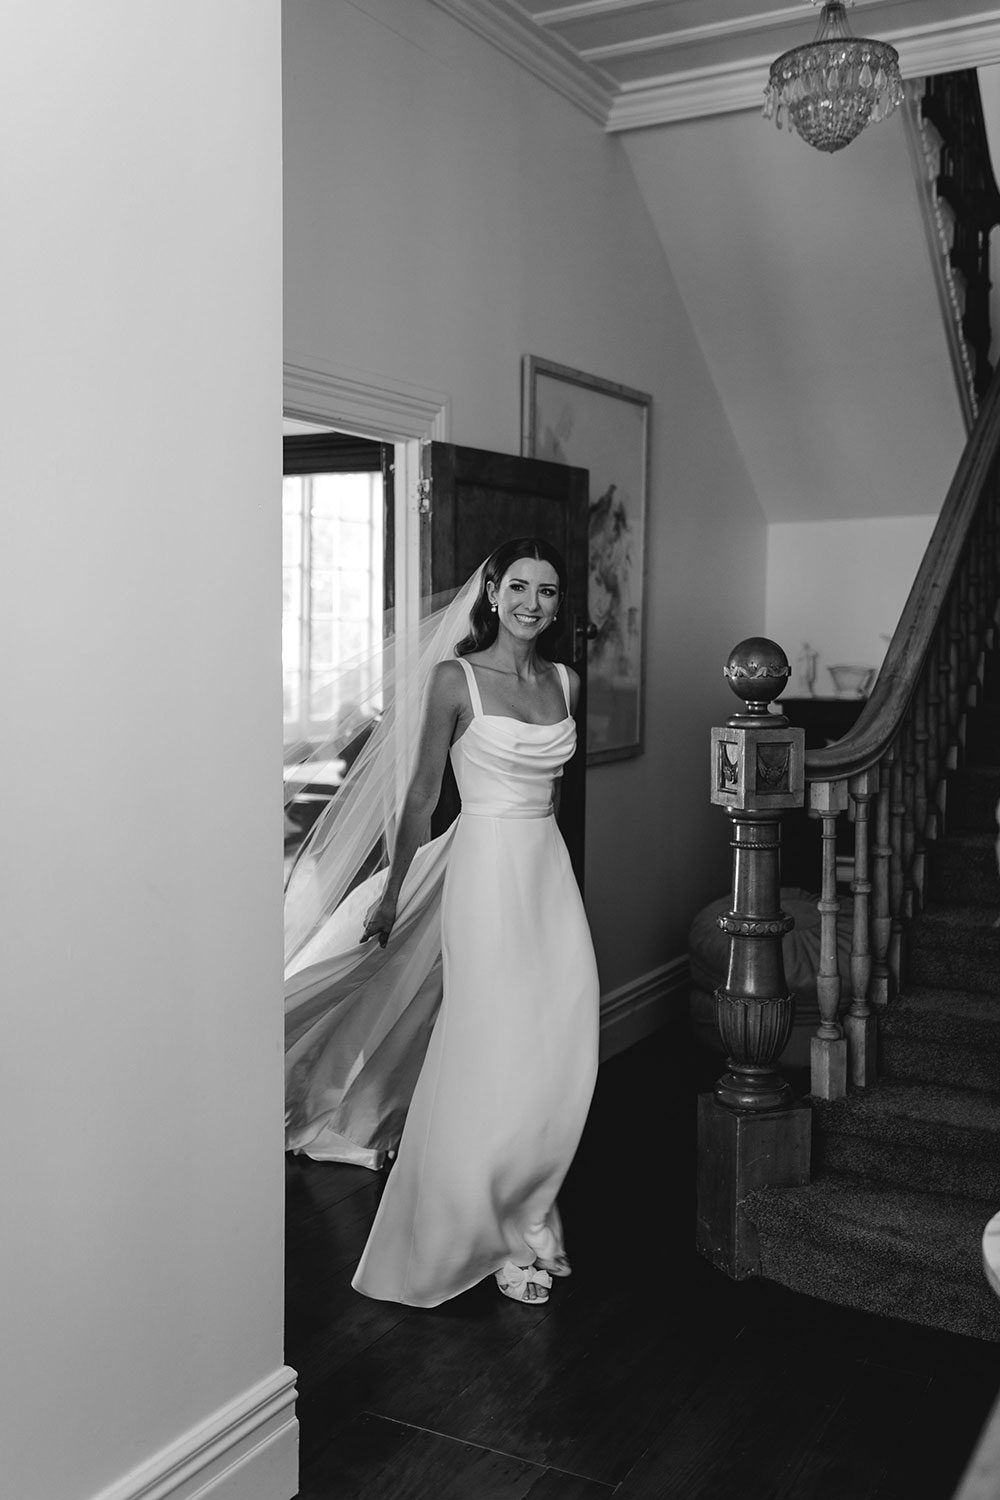 Bride wearing NZ Bespoke Bridal Gown made of silk faile with cowl bodice and detachable overskirt by Vinka Designs - black and white at bottom of stairs